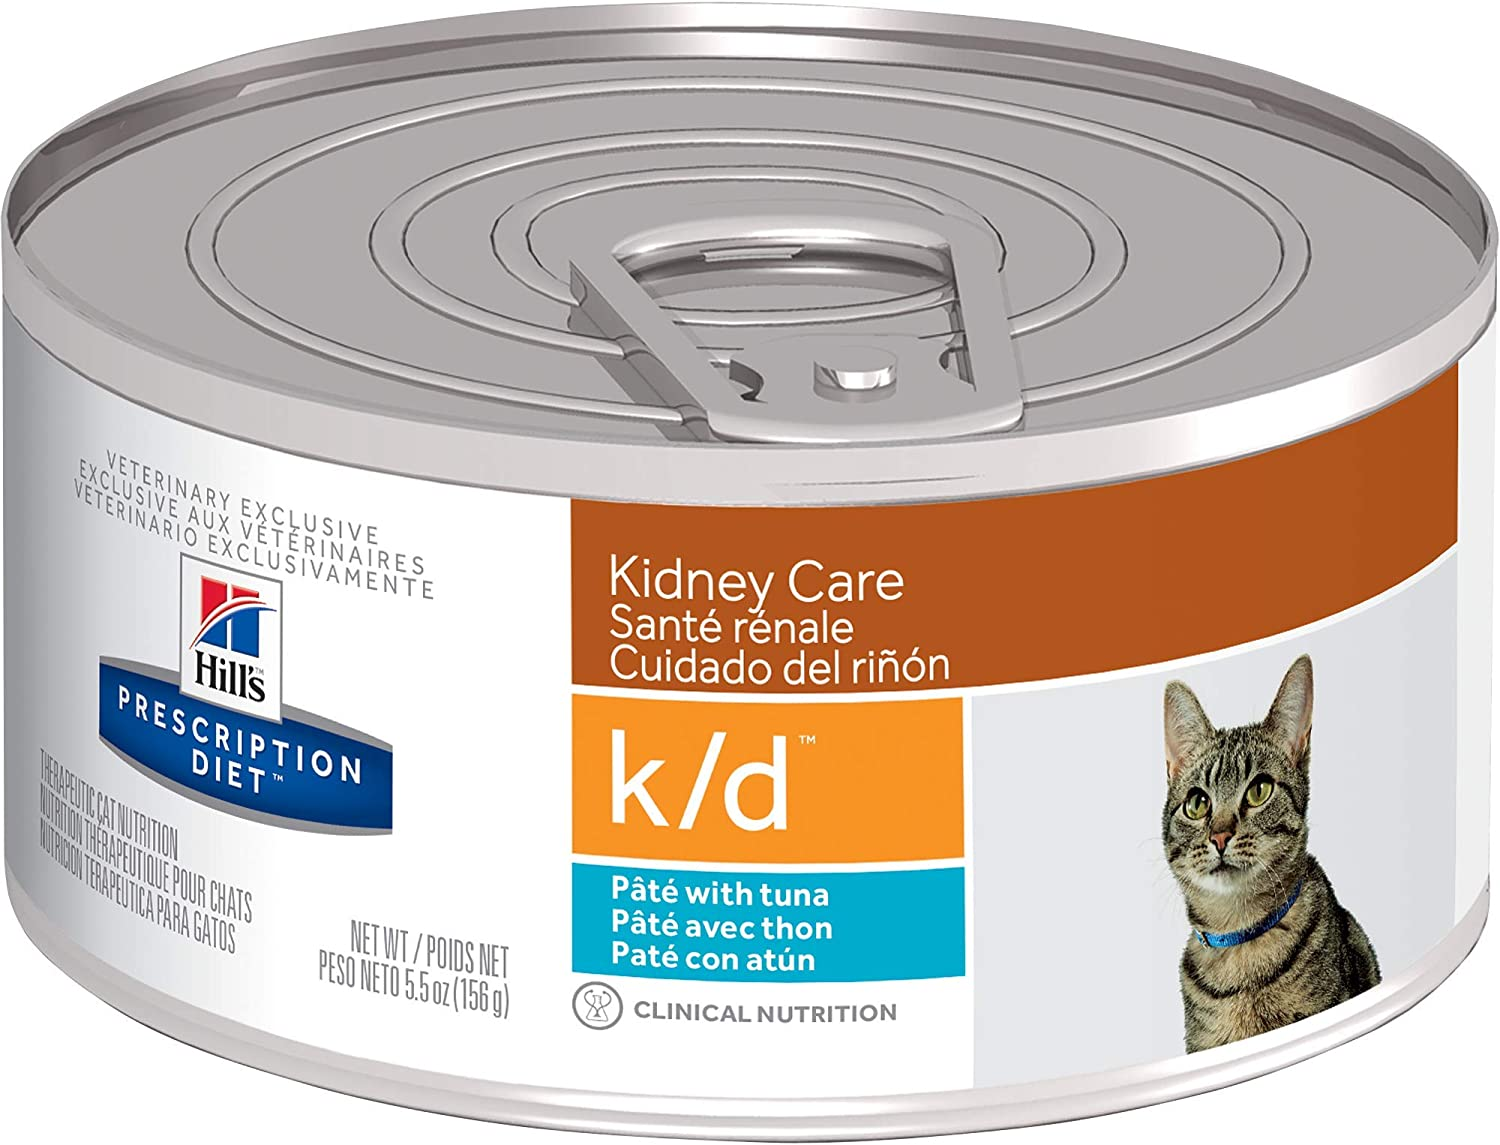 Hill's Prescription Diet k/d Kidney Care with Tuna Canned Cat Food, 5.5 oz, 24-pack wet food